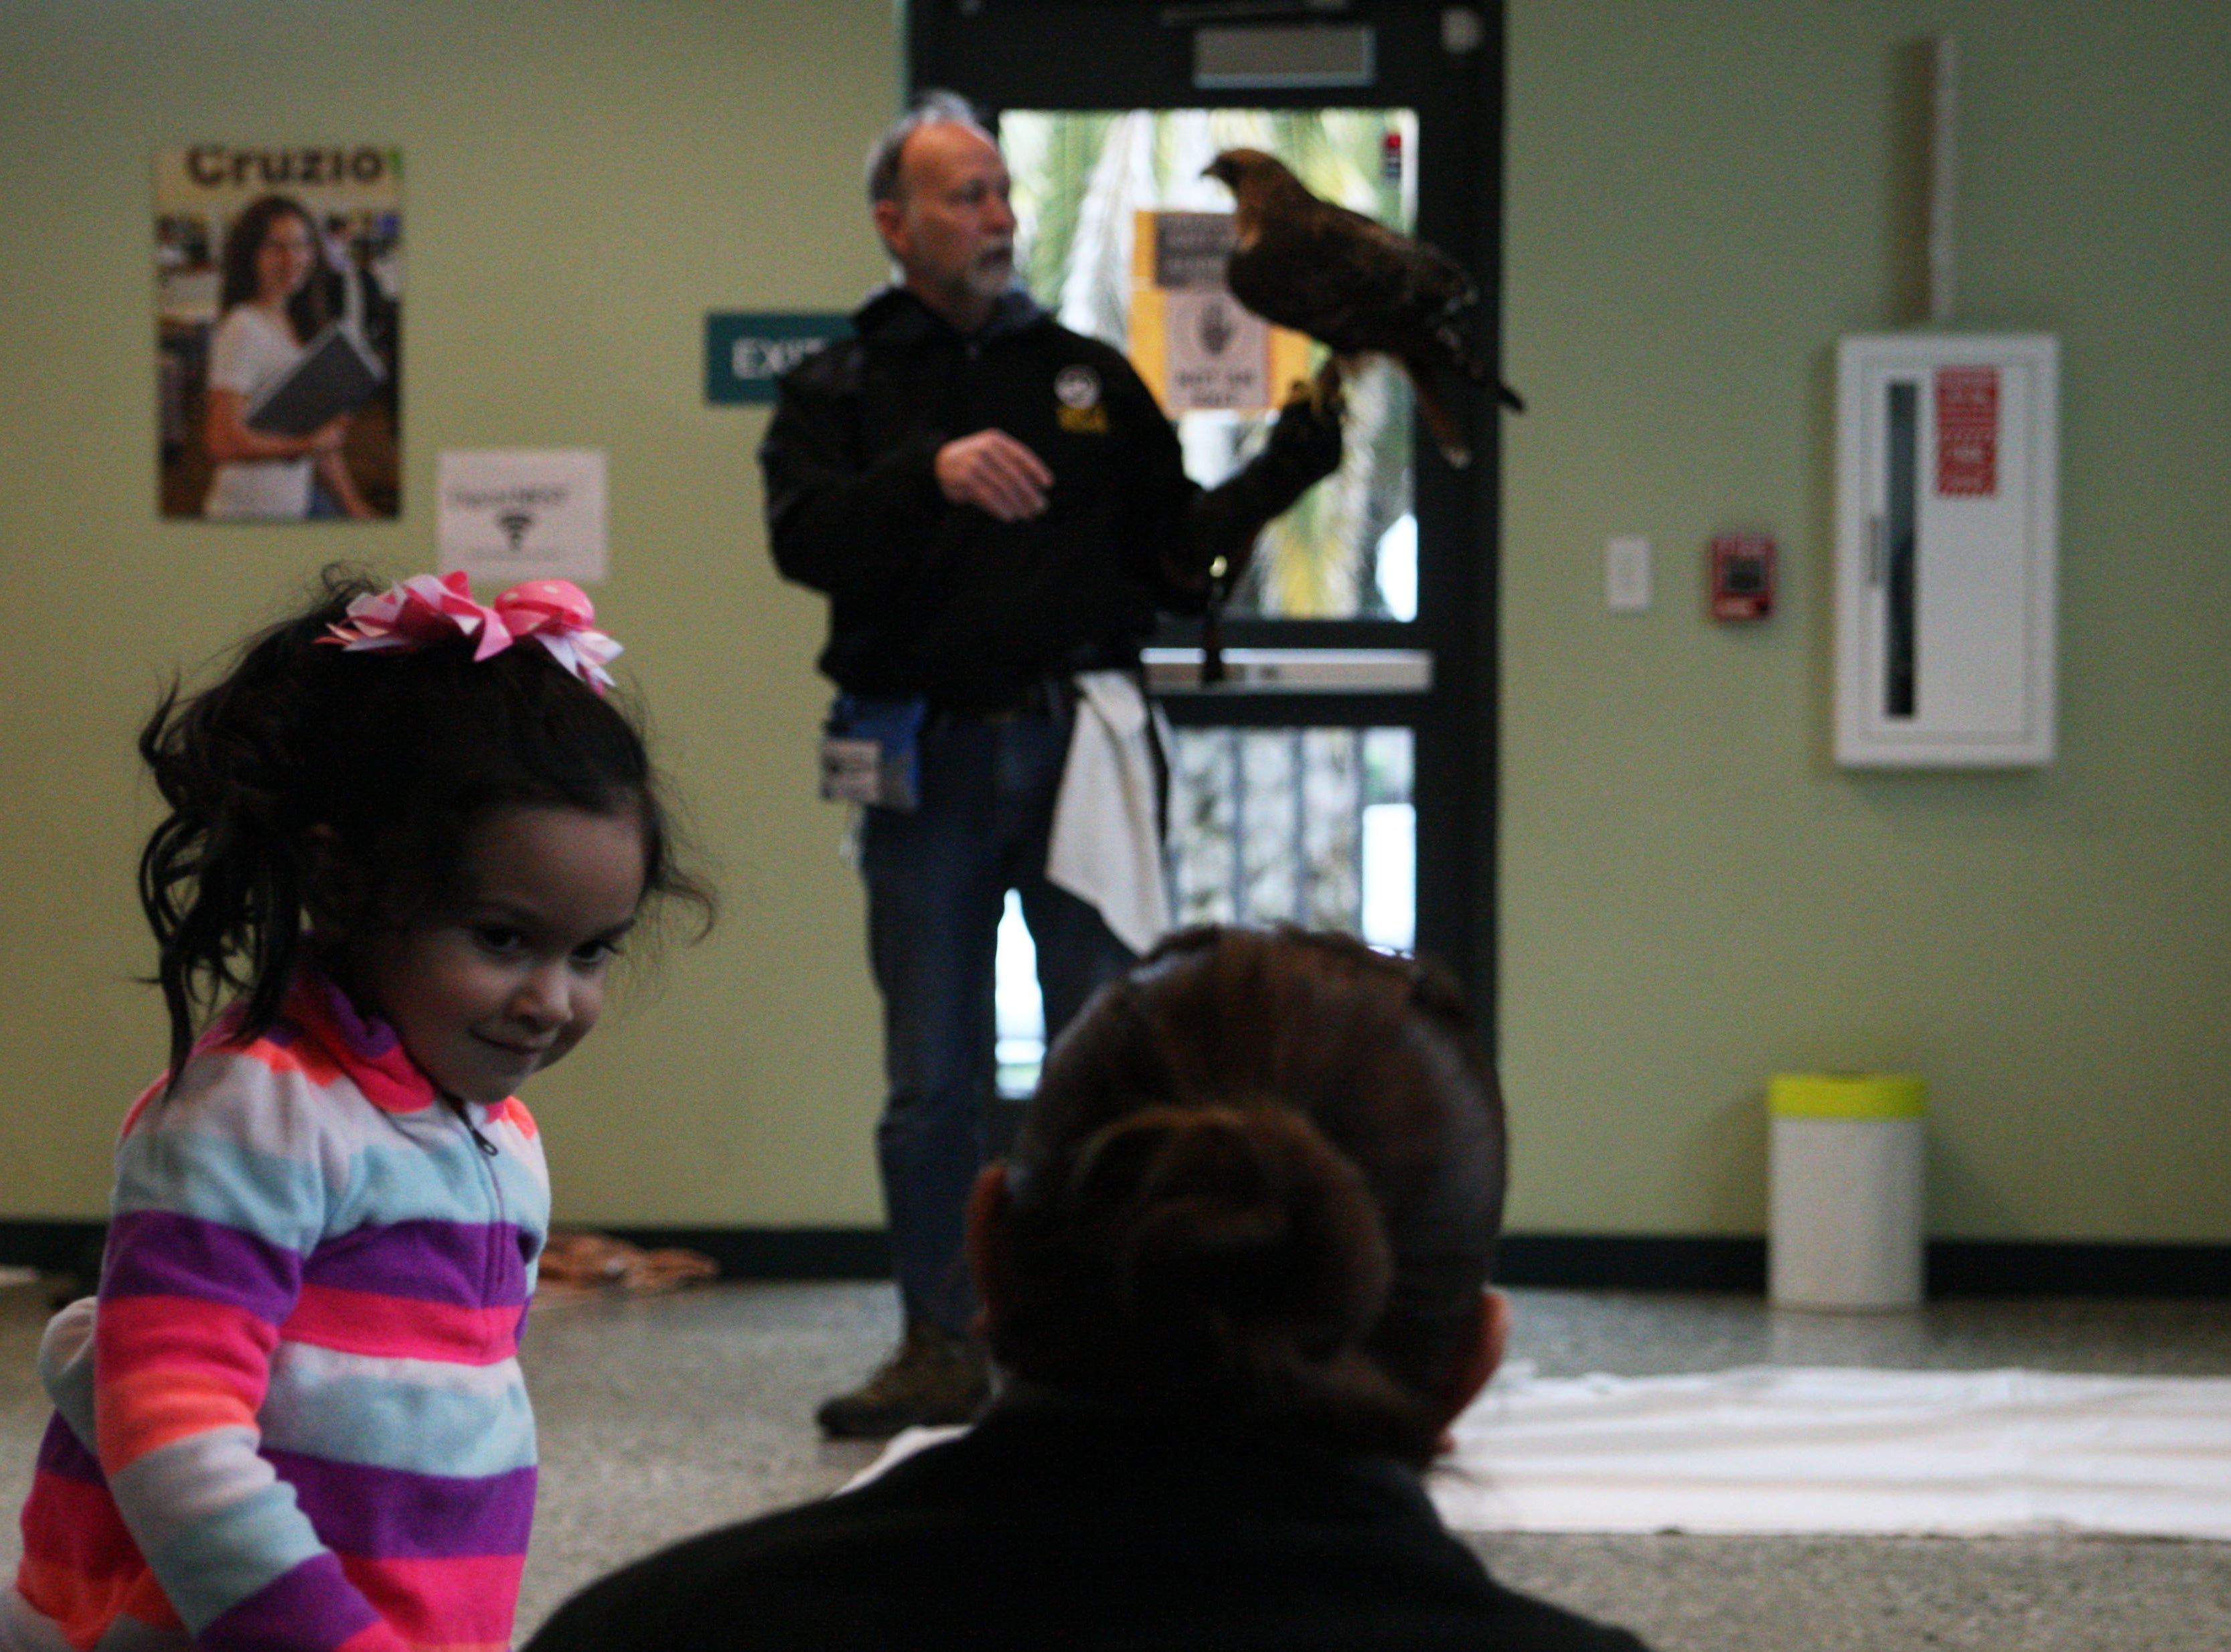 A young girl smiles at her mother during Saturday's presentation on Red-tailed Hawks, featuring a real Red-tailed Hawk.